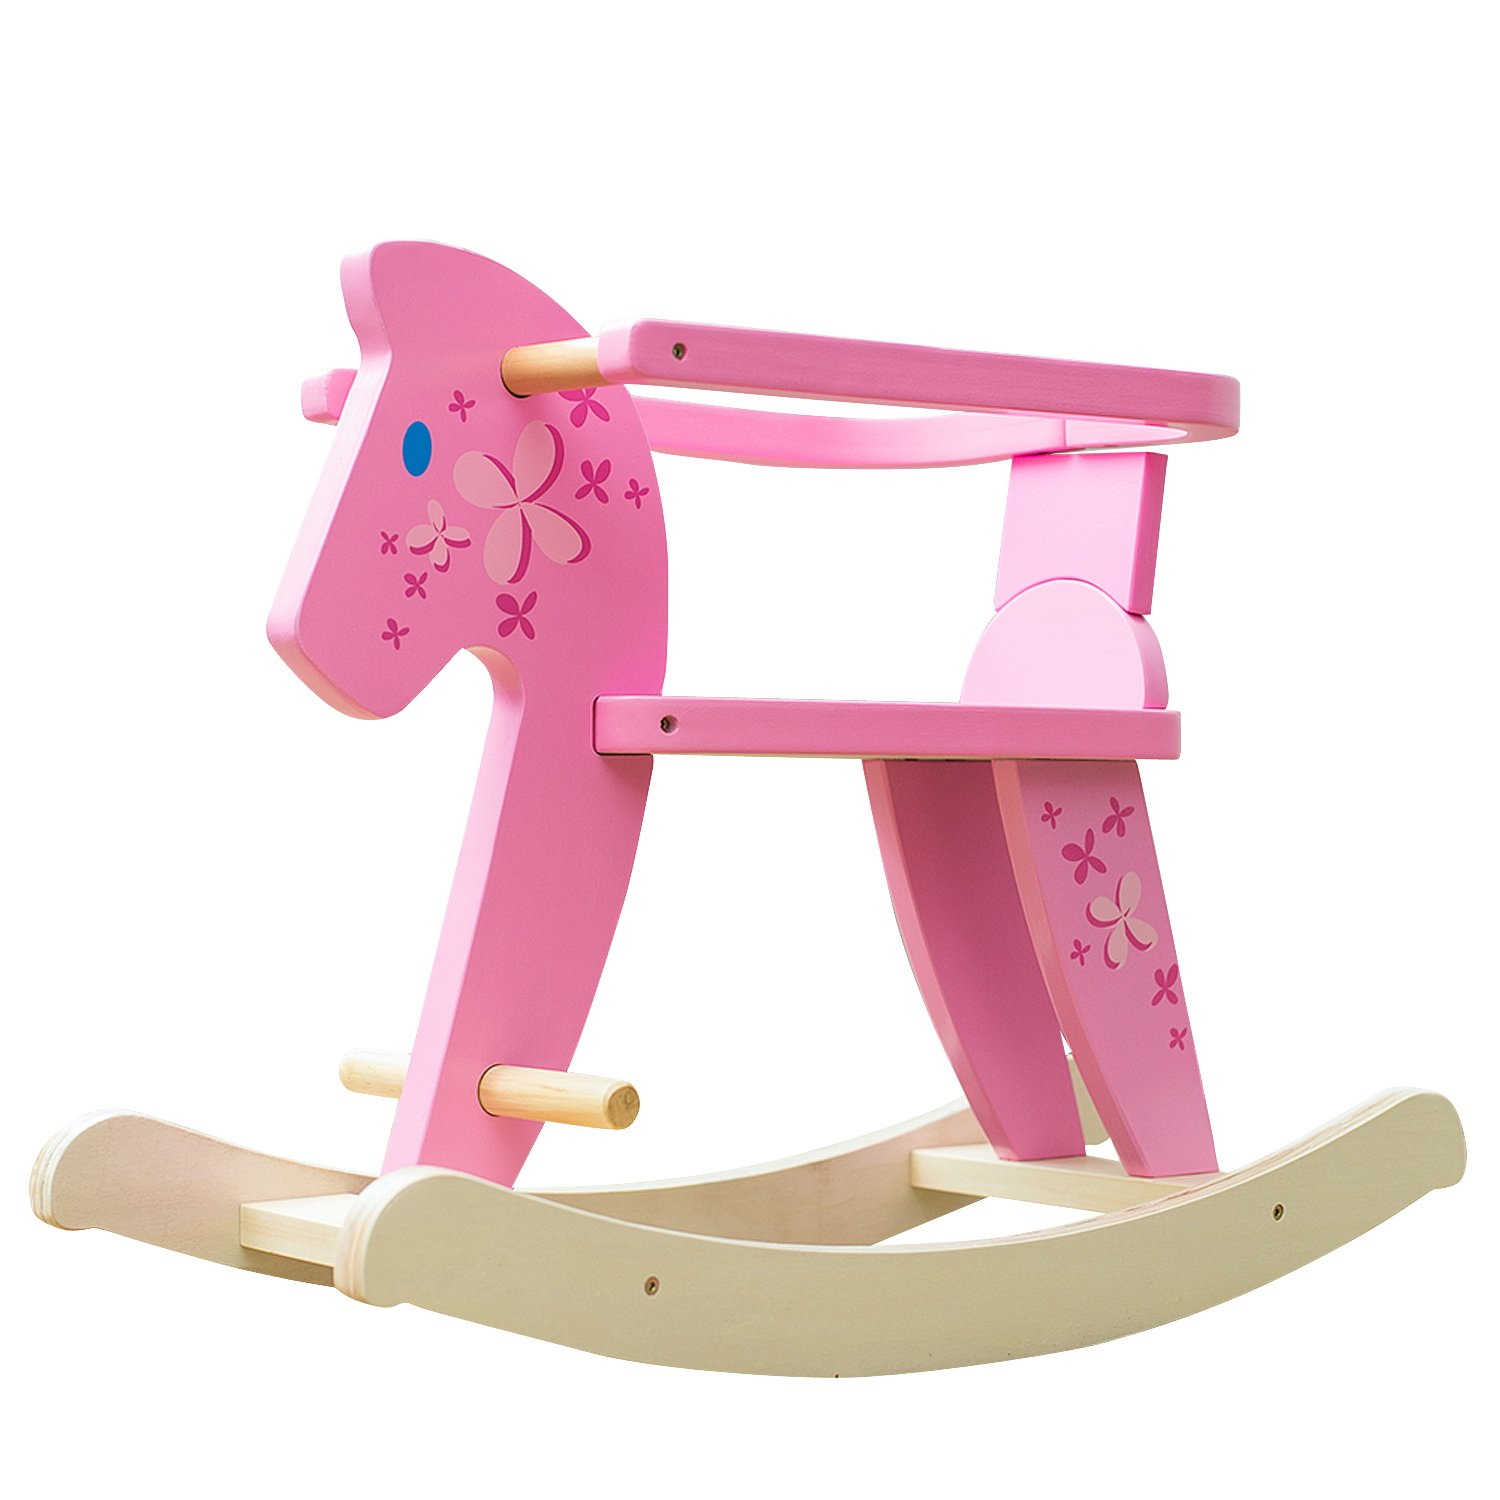 Labebe Child Rocking Horse, Wooden Rocking Horse Toy, Pink Rocking Horse for kid 1-3 Years, Baby Rocking Horse Set/Kid Rocking Horse Chair/Outdoor Rocking Horse/Rocker/Animal Ride/Rocking Toy